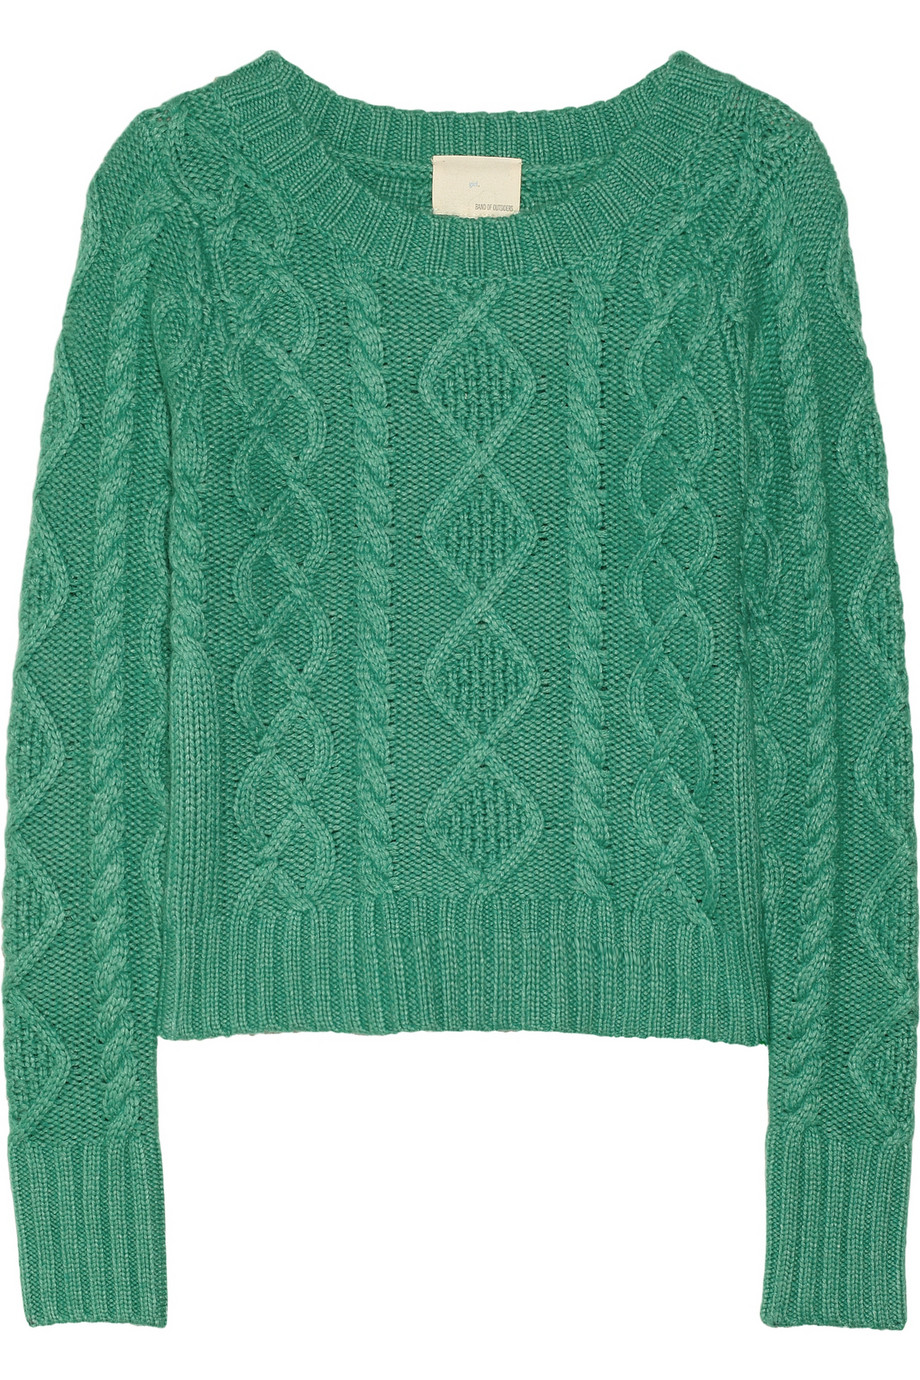 Cable-knit sweater | Band of Outsiders | 60% off | THE OUTNET